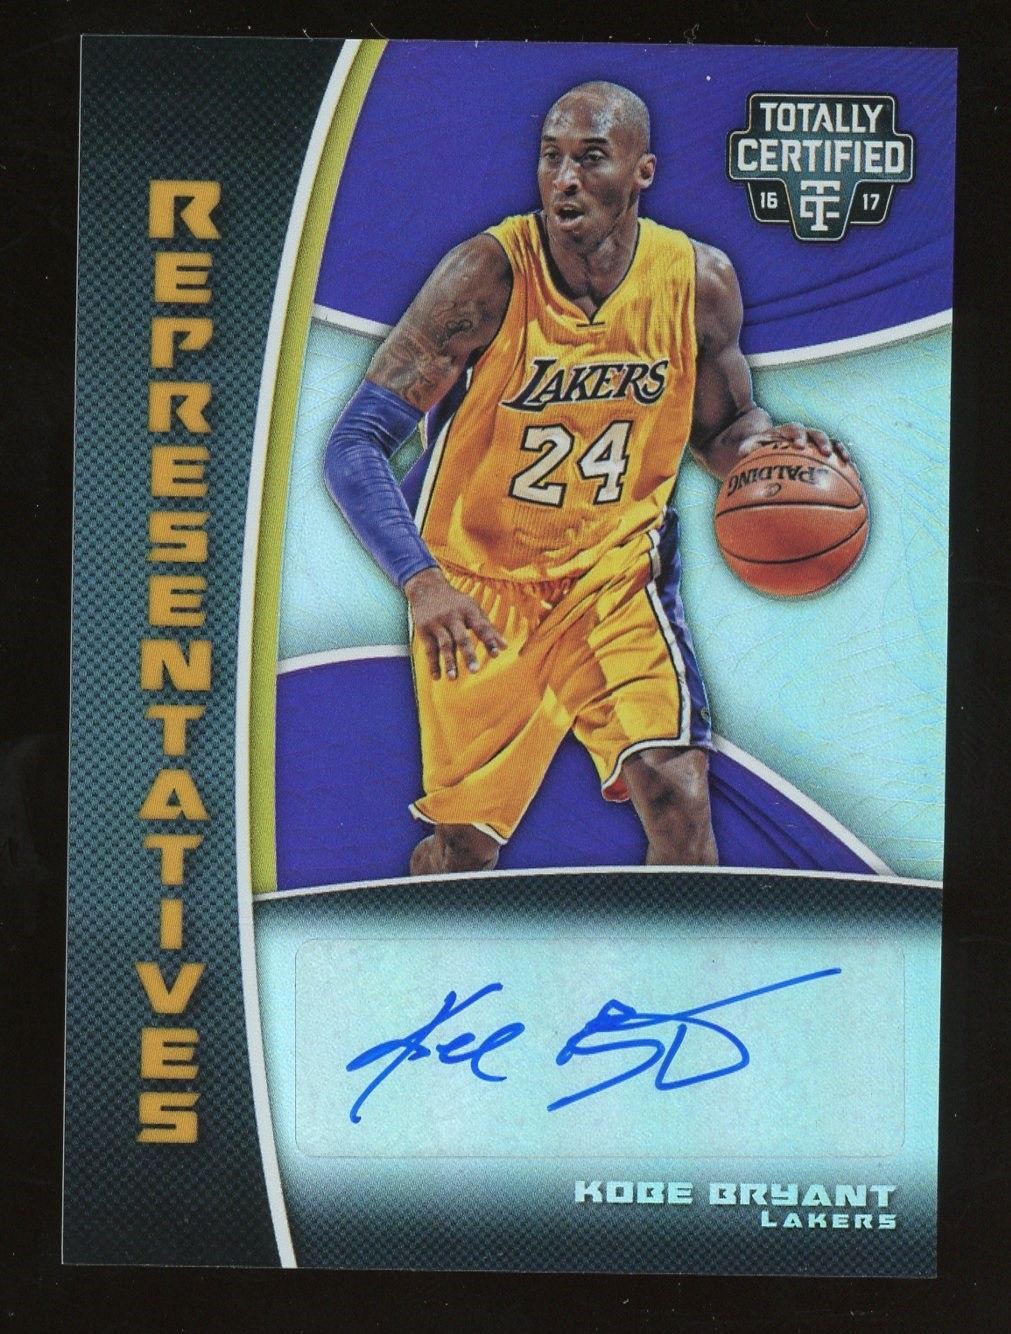 2016 17 Totally Certified Representatives Kobe Bryant Lakers Auto 25 25 Basketballcards Bryant Lakers Basketball Cards Kobe Bryant